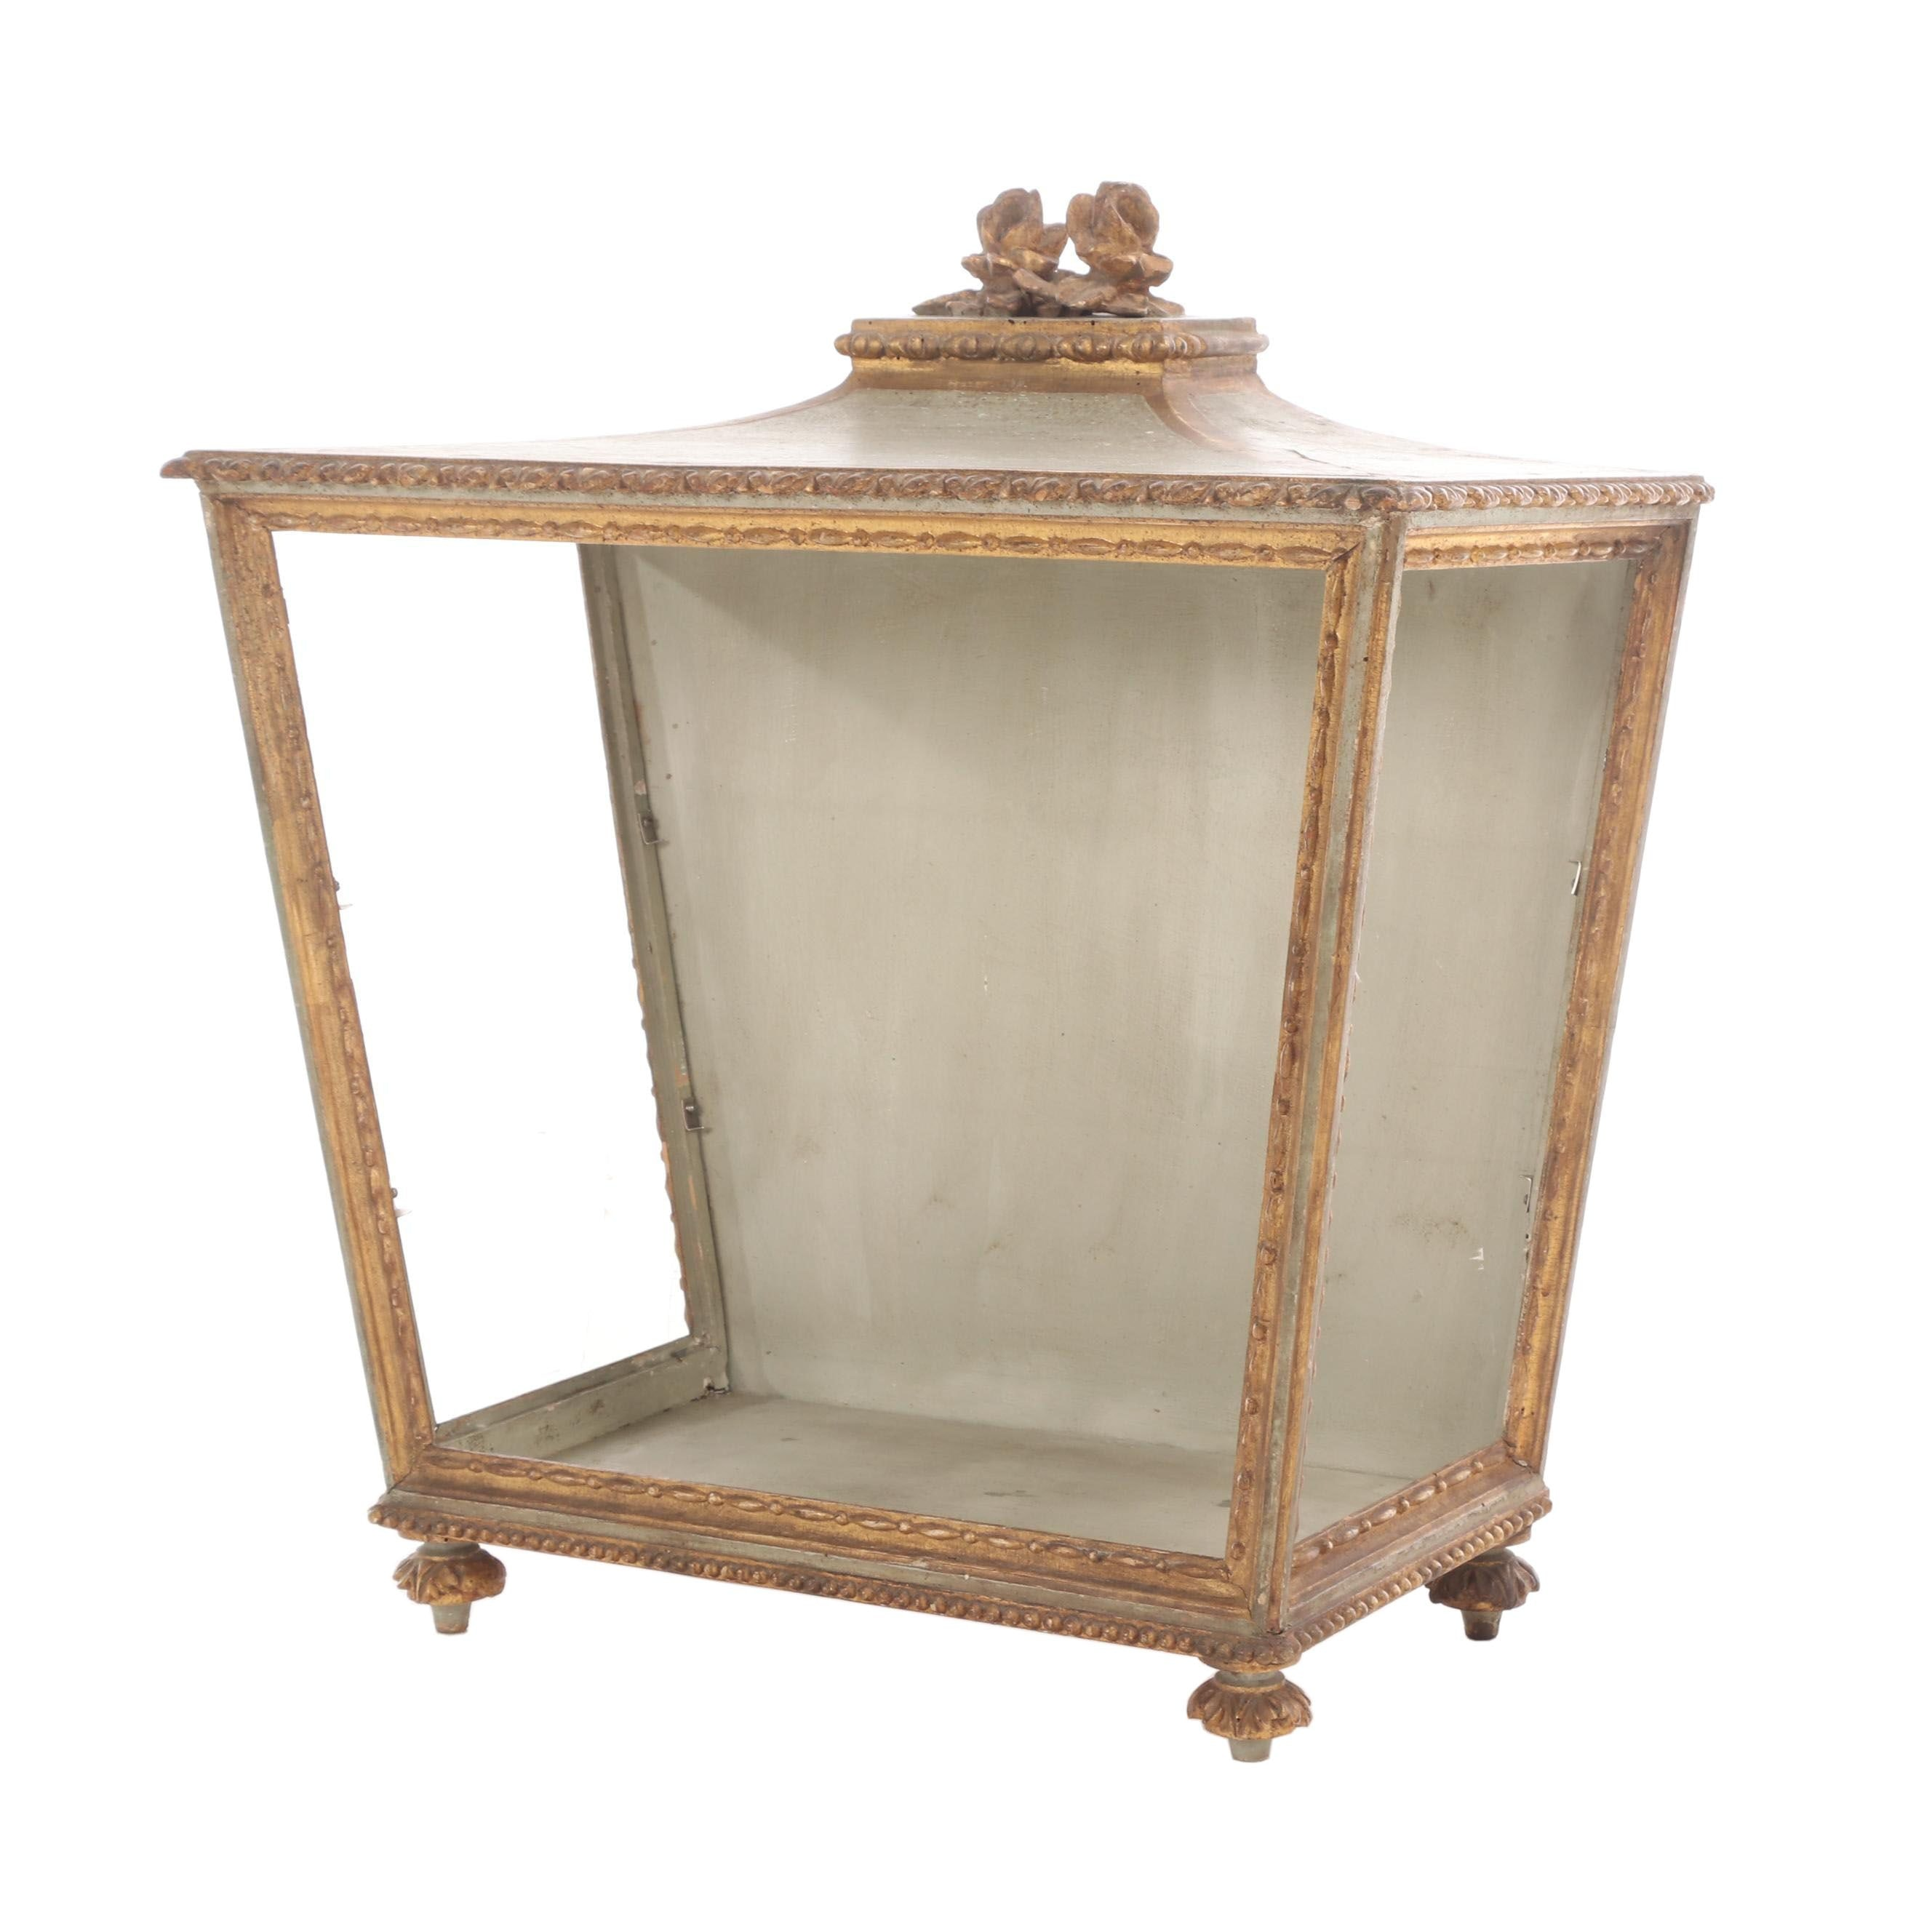 Louis XVI Style Carved Painted Giltwood Tabletop Vitrine